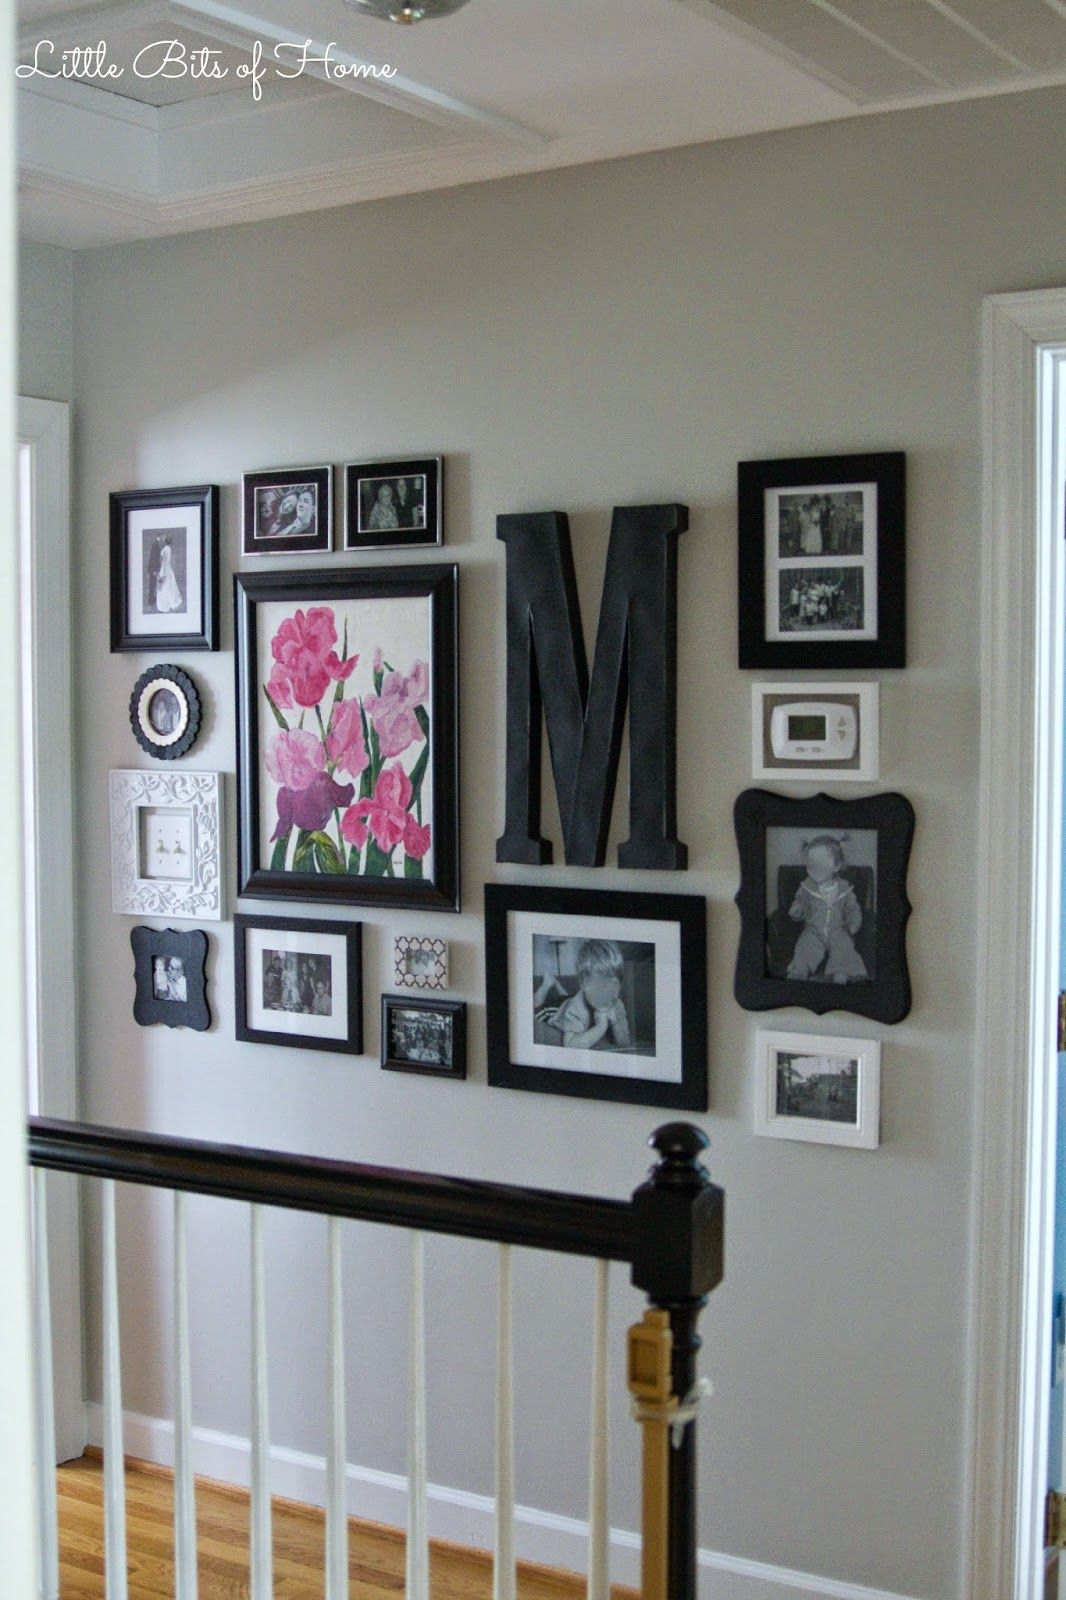 Little bits of home hallway gallery wall gallery walls little bits of home hallway gallery wall jeuxipadfo Choice Image